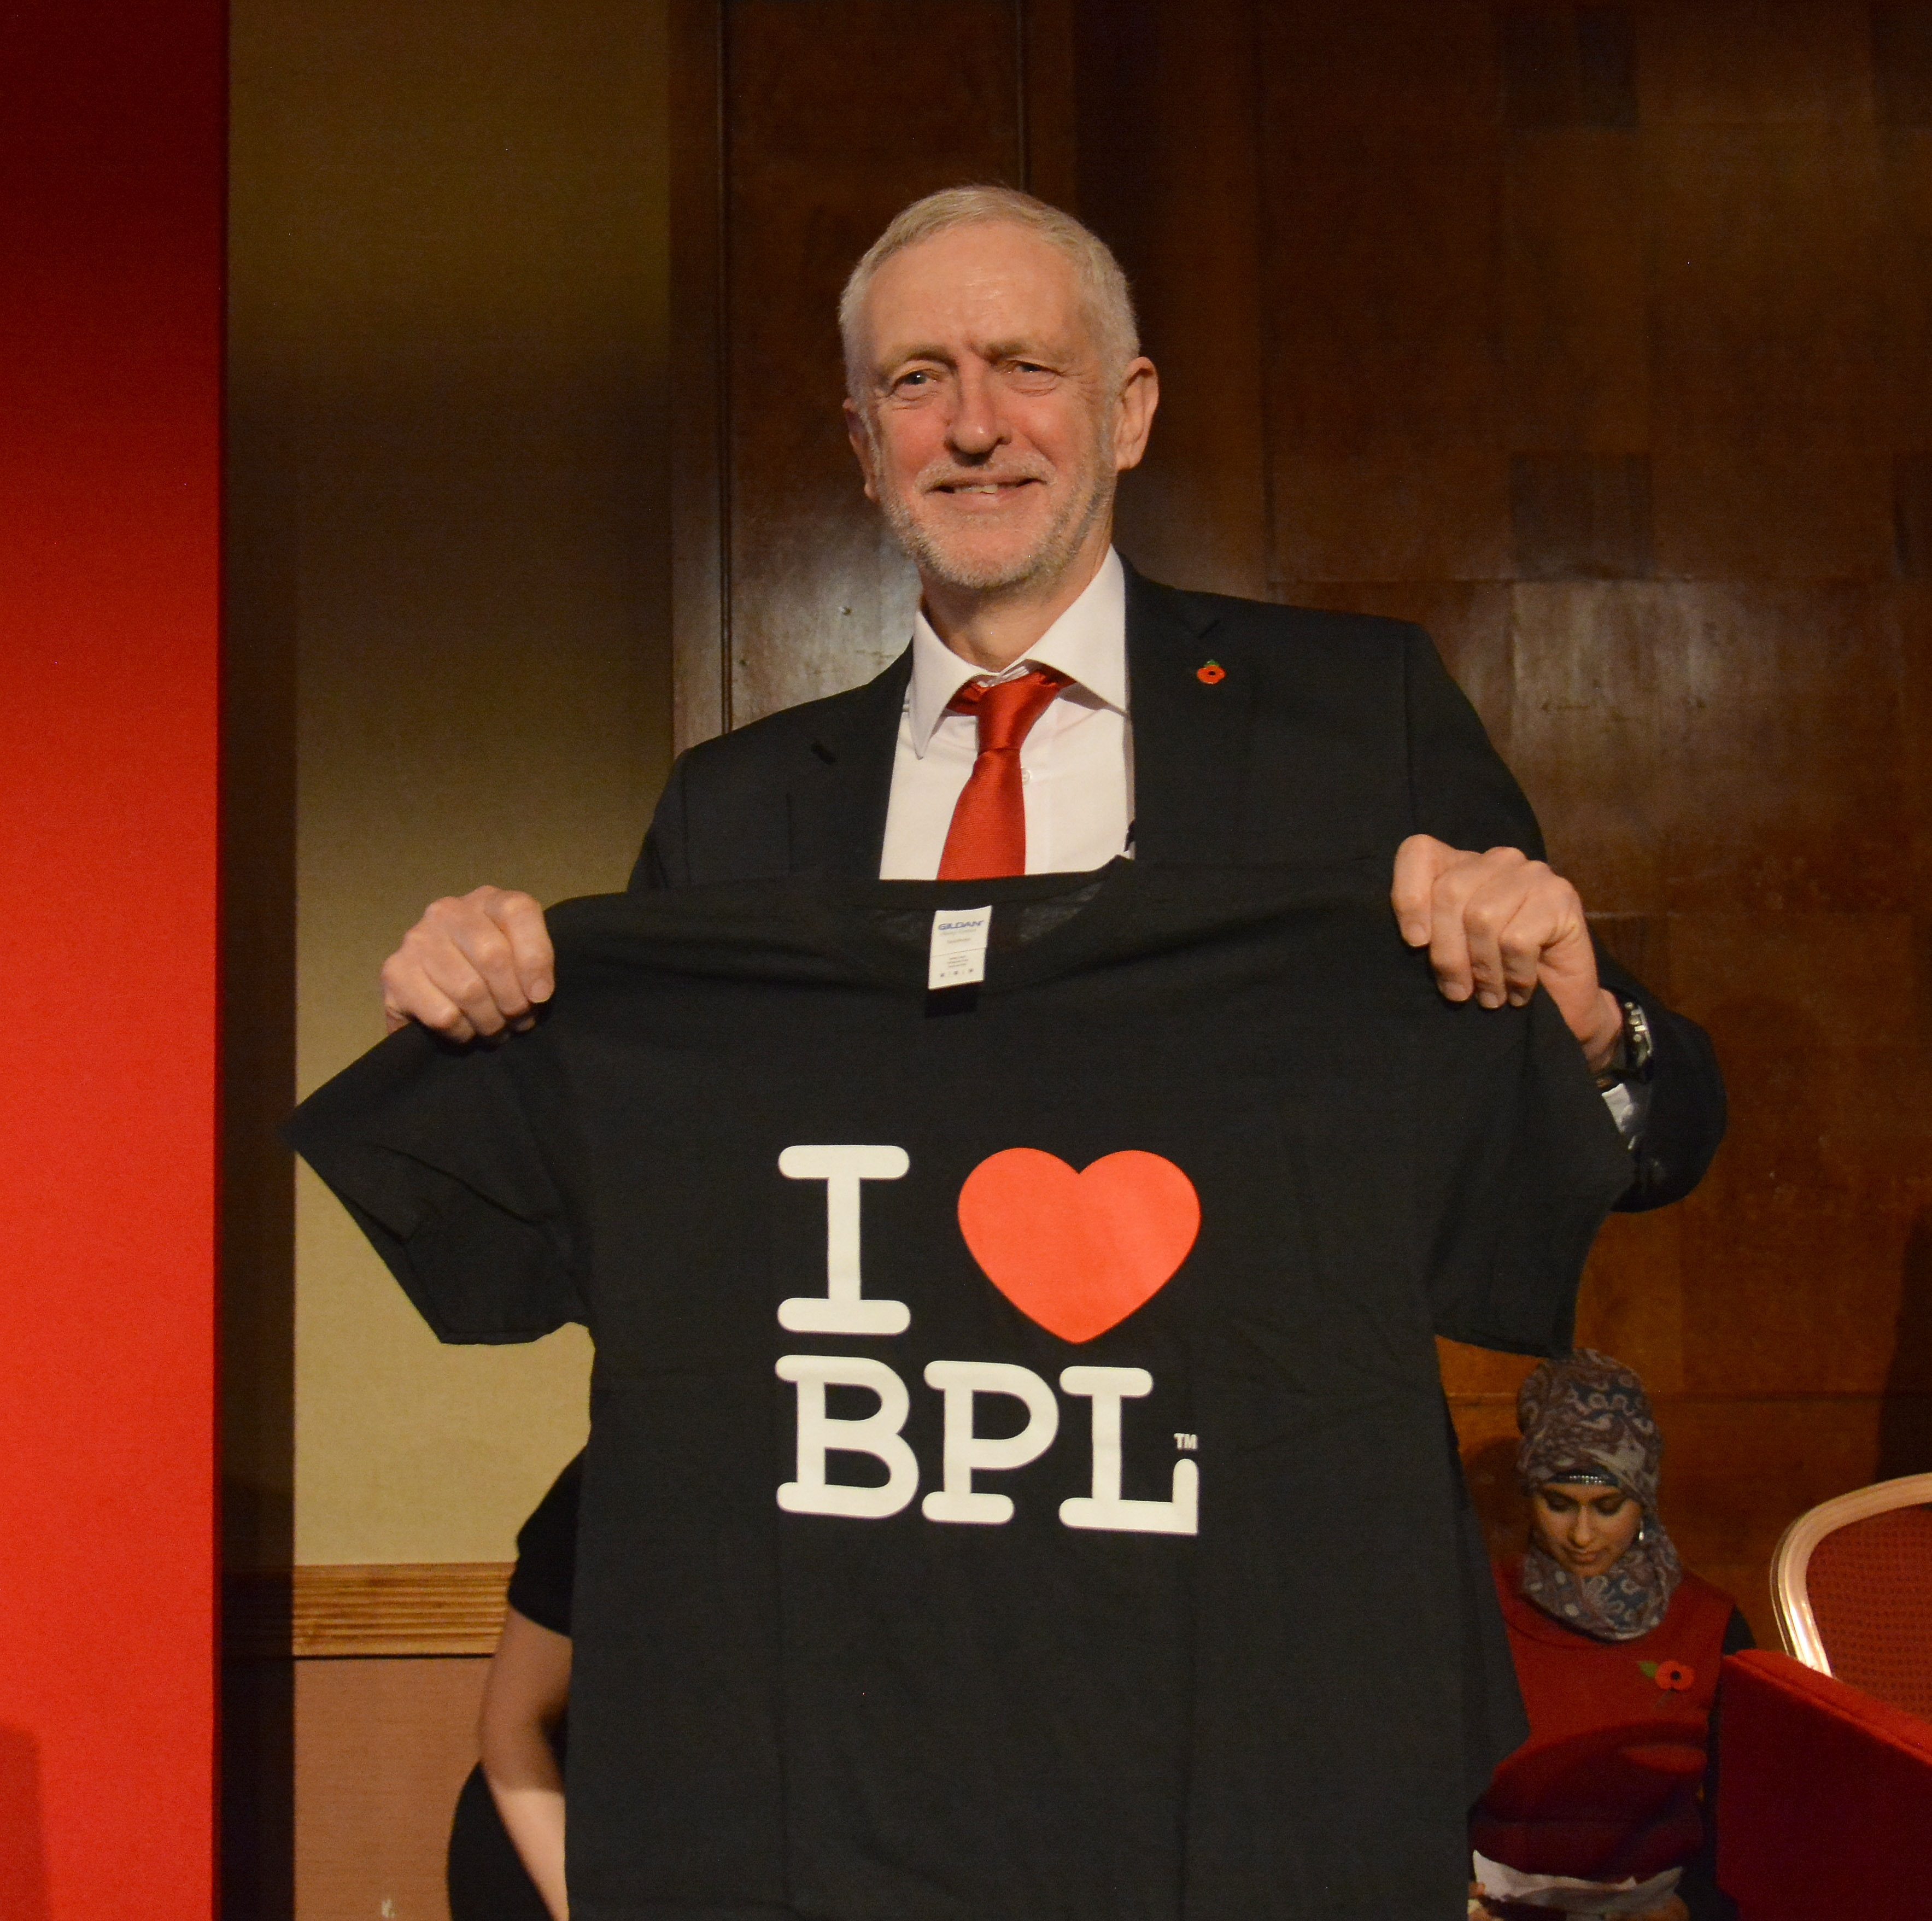 Jeremy Corbyn MP shows the love for Blackpool at the North West Labour Party Conference